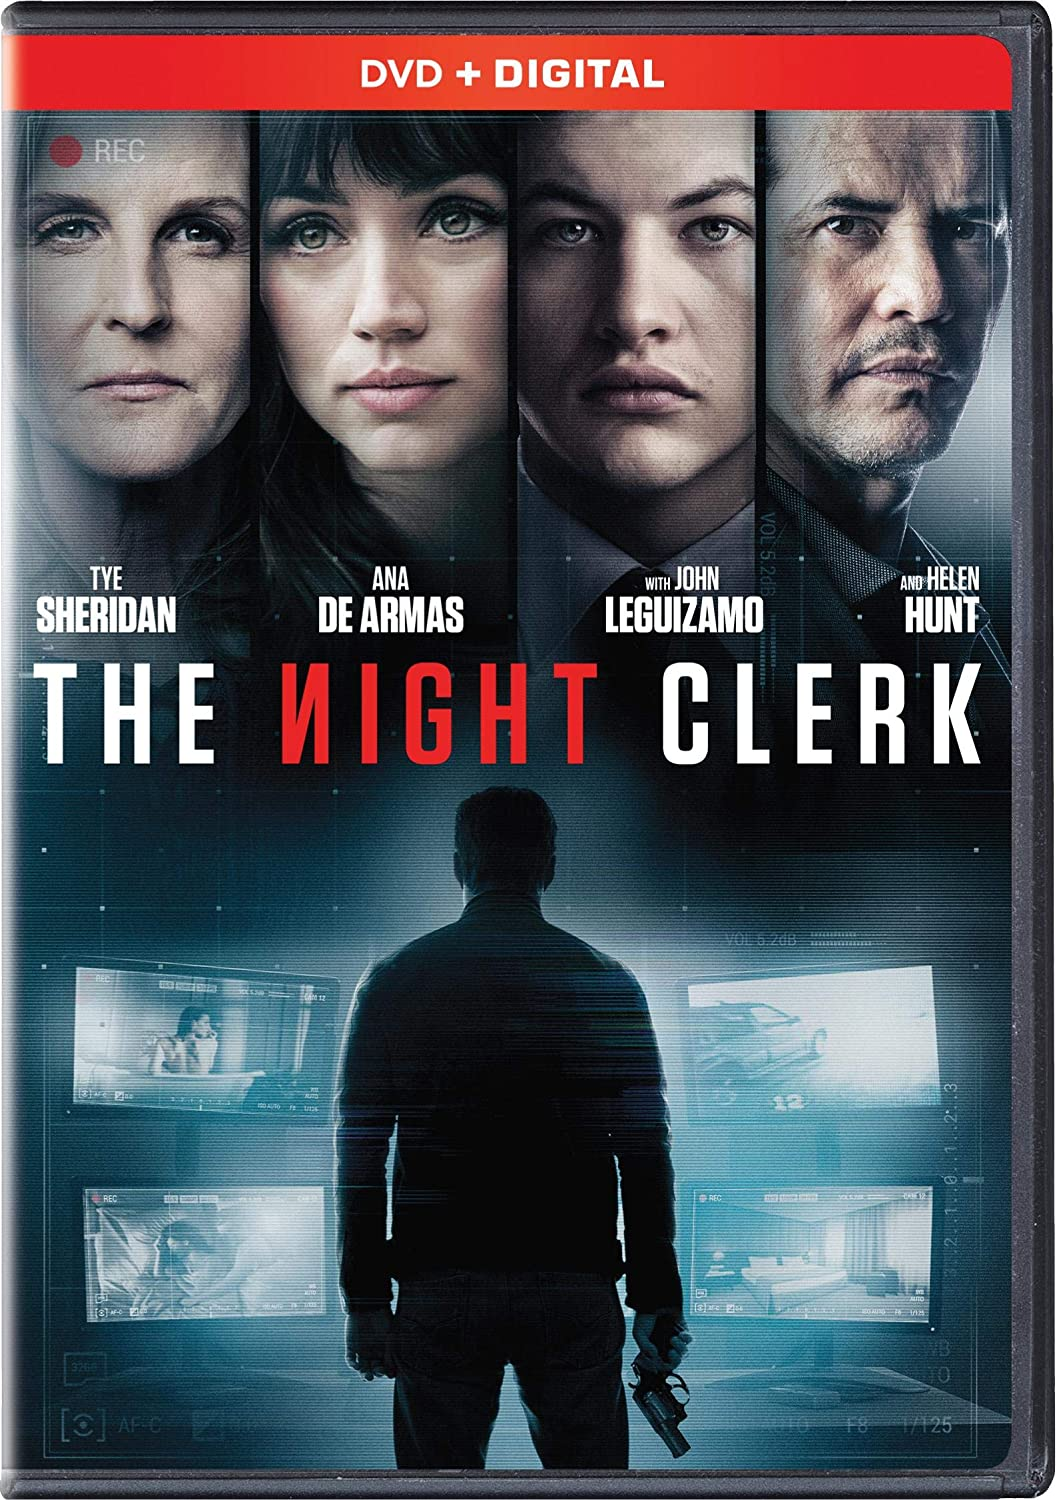 THE NIGHT CLERK  Blu-ray